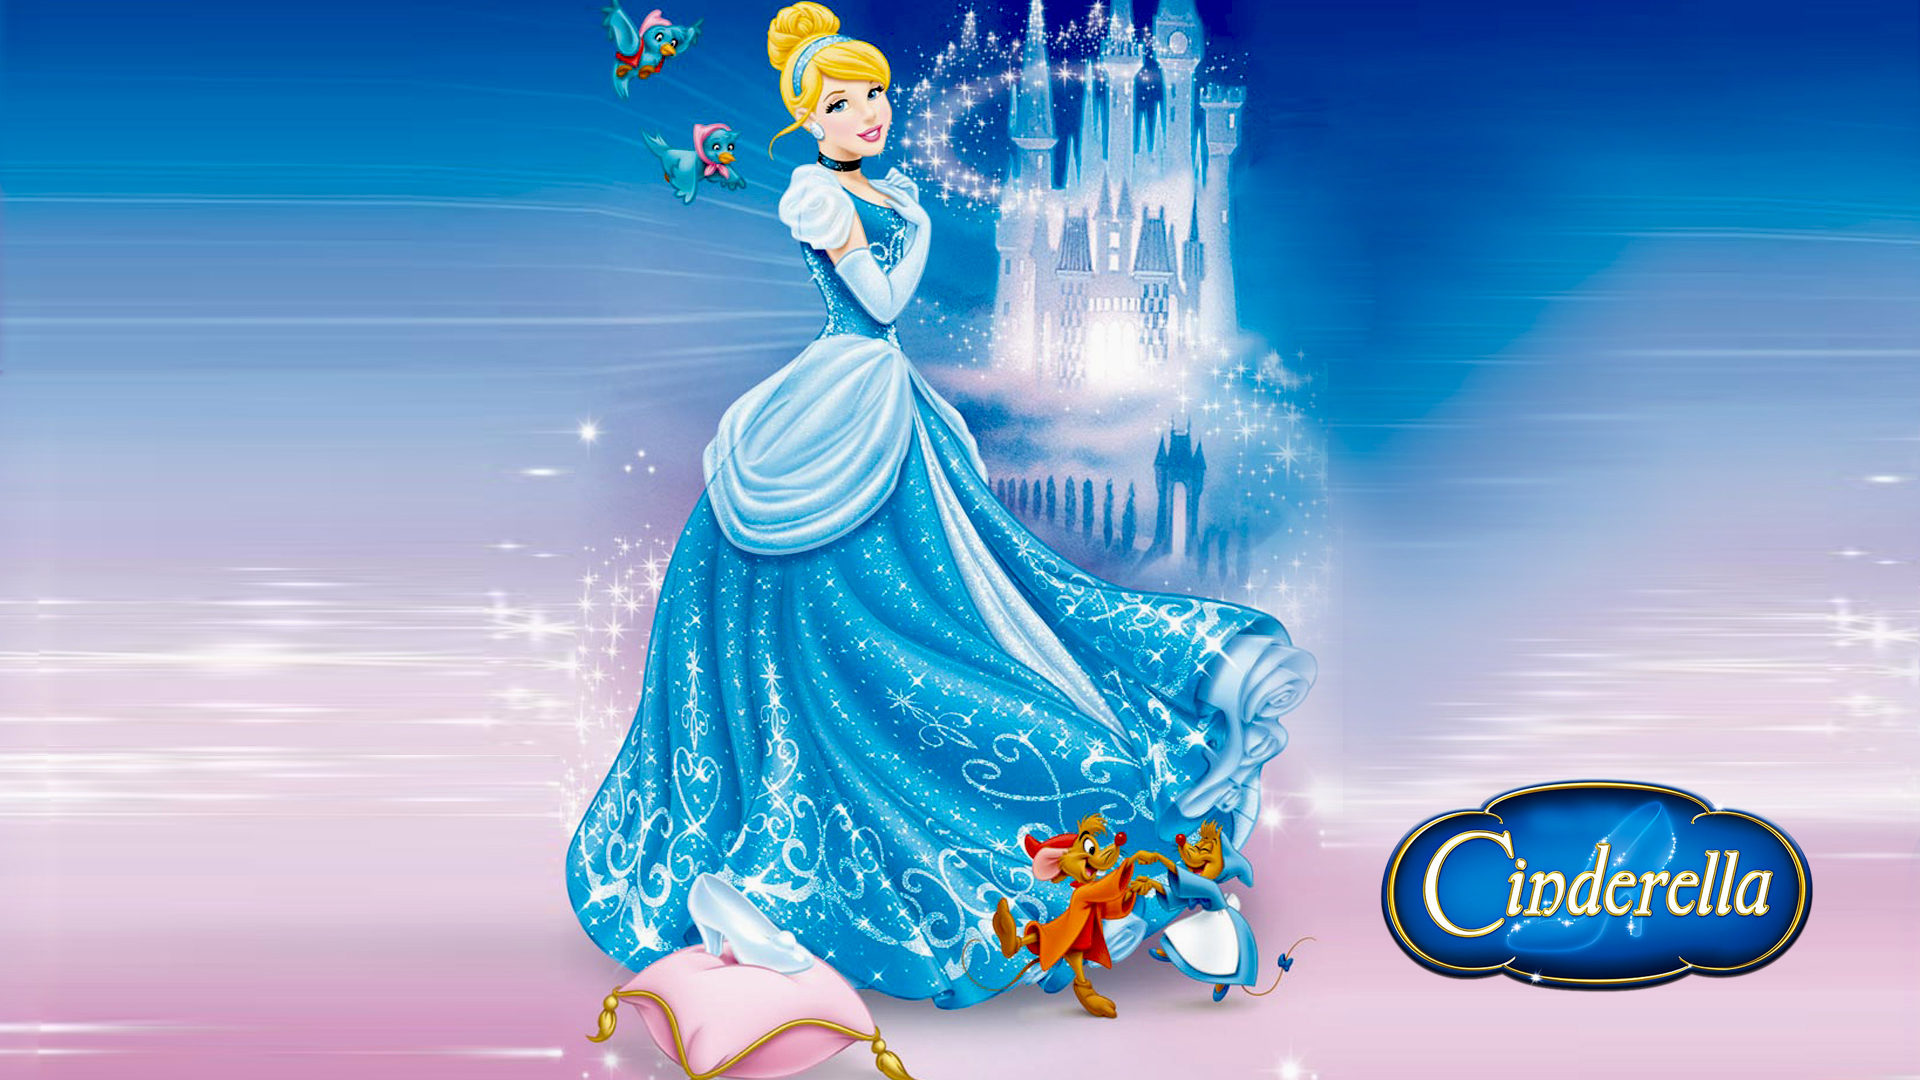 Cars The Movie Christmas Wallpaper Castle Of Cinderella And Friends Jaq And Perla Cartoons